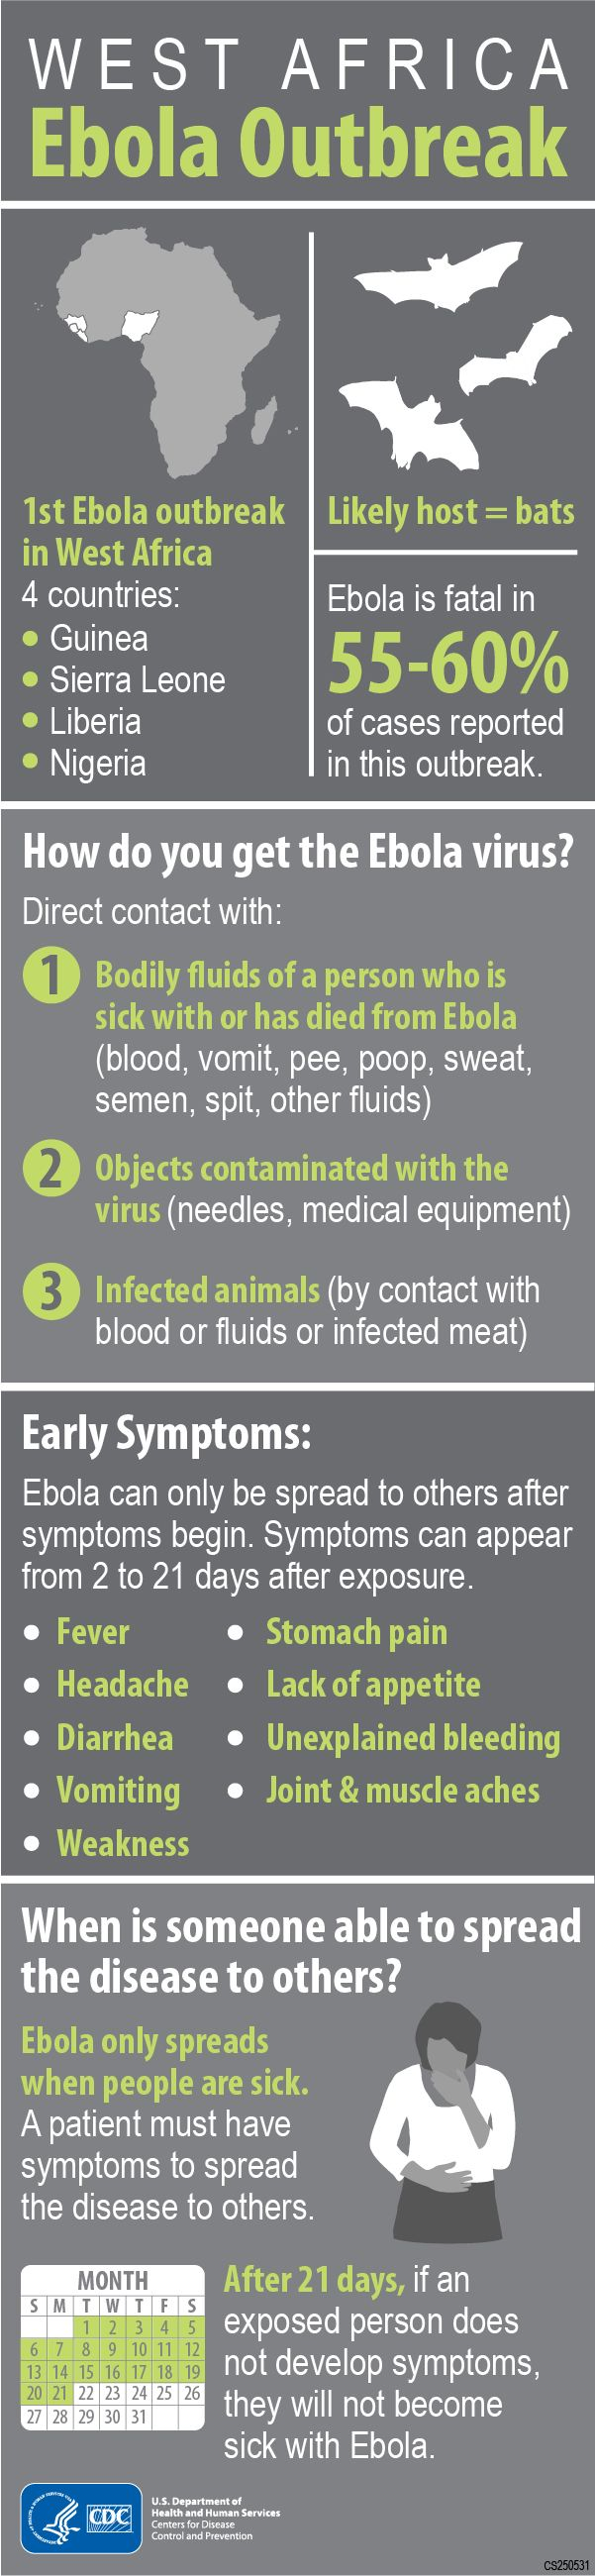 You be way better design with more images  This is the first #Ebola outbreak in West Africa, impacting Guinea, Sierra Leone, Liberia, and Nigeria. Get the facts from our Ebola infographic.